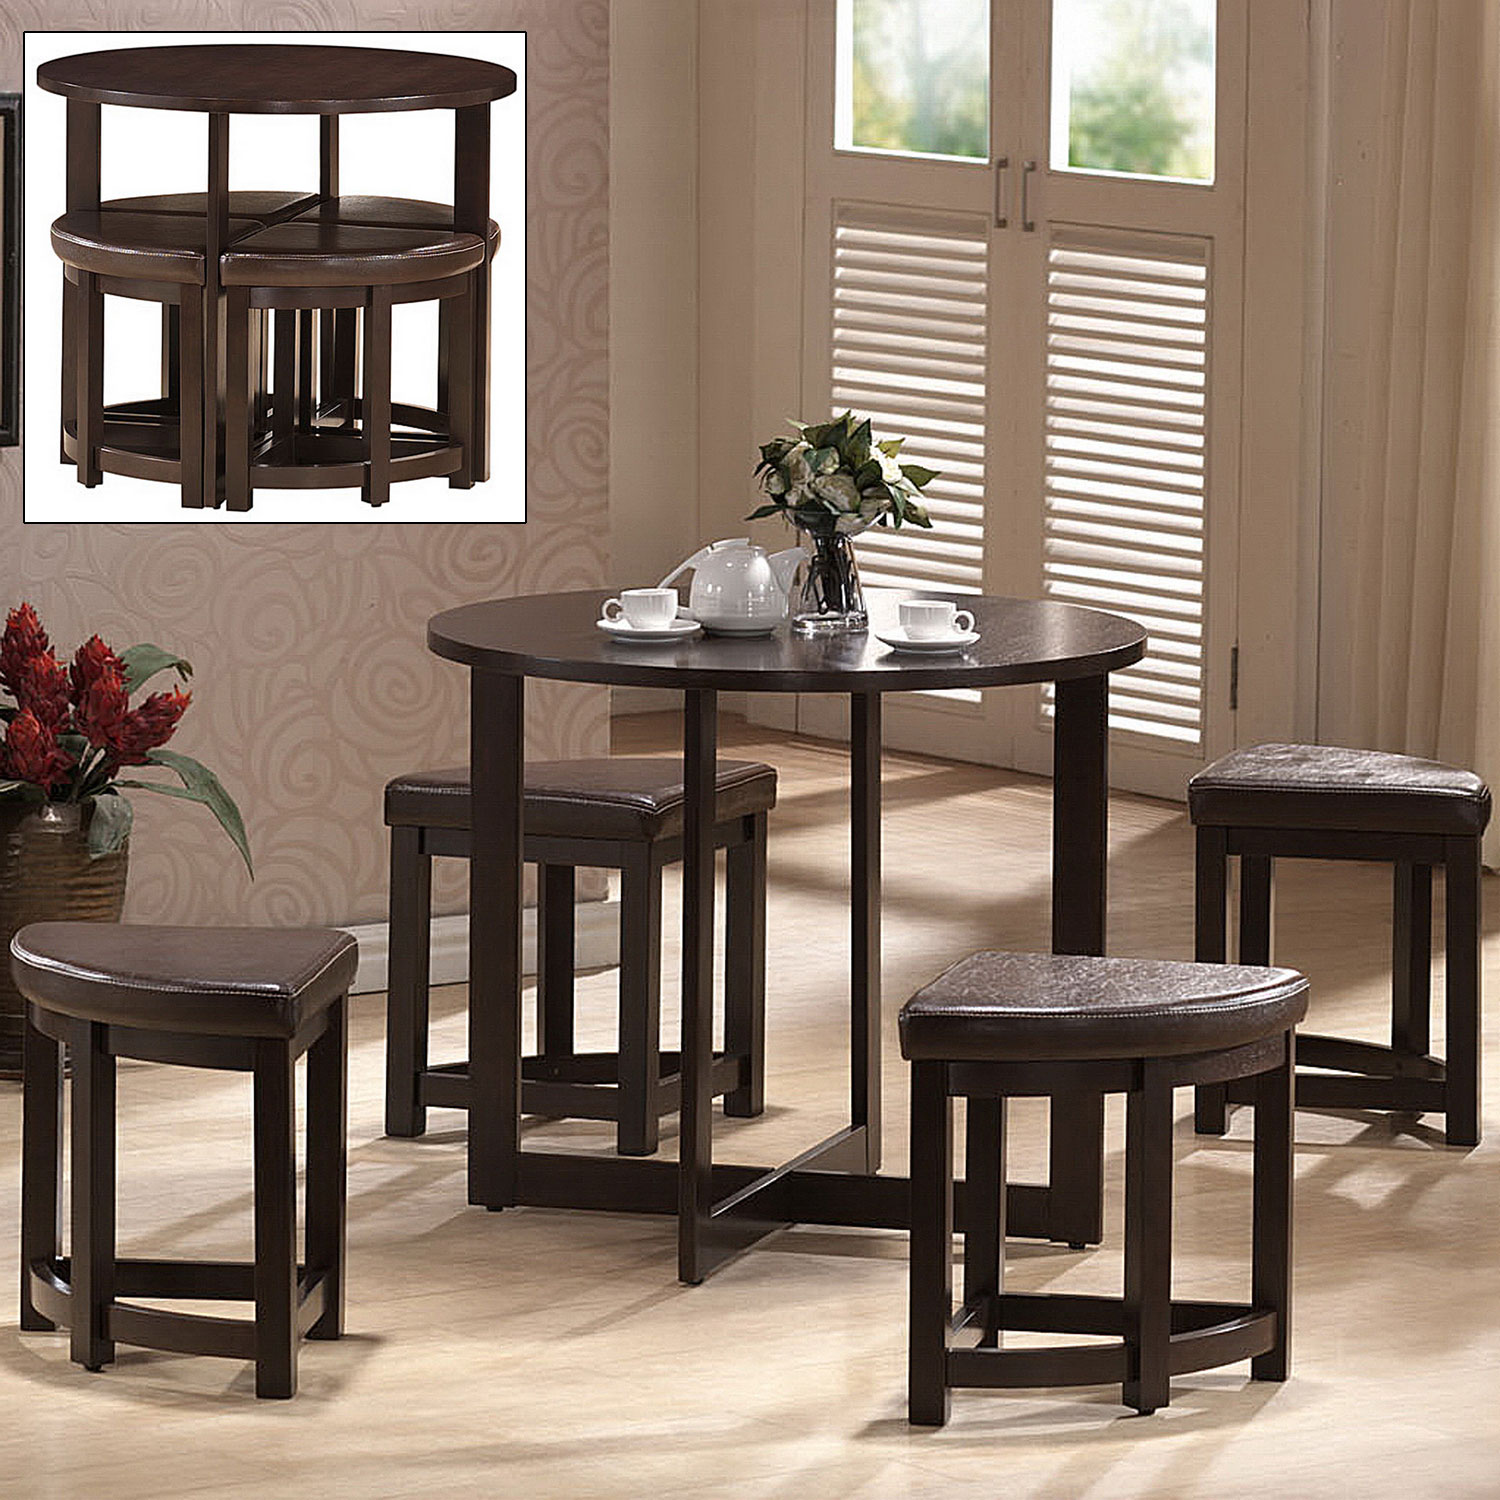 Rochester Bar Table Set With Nesting Stools In Bar Table Sets